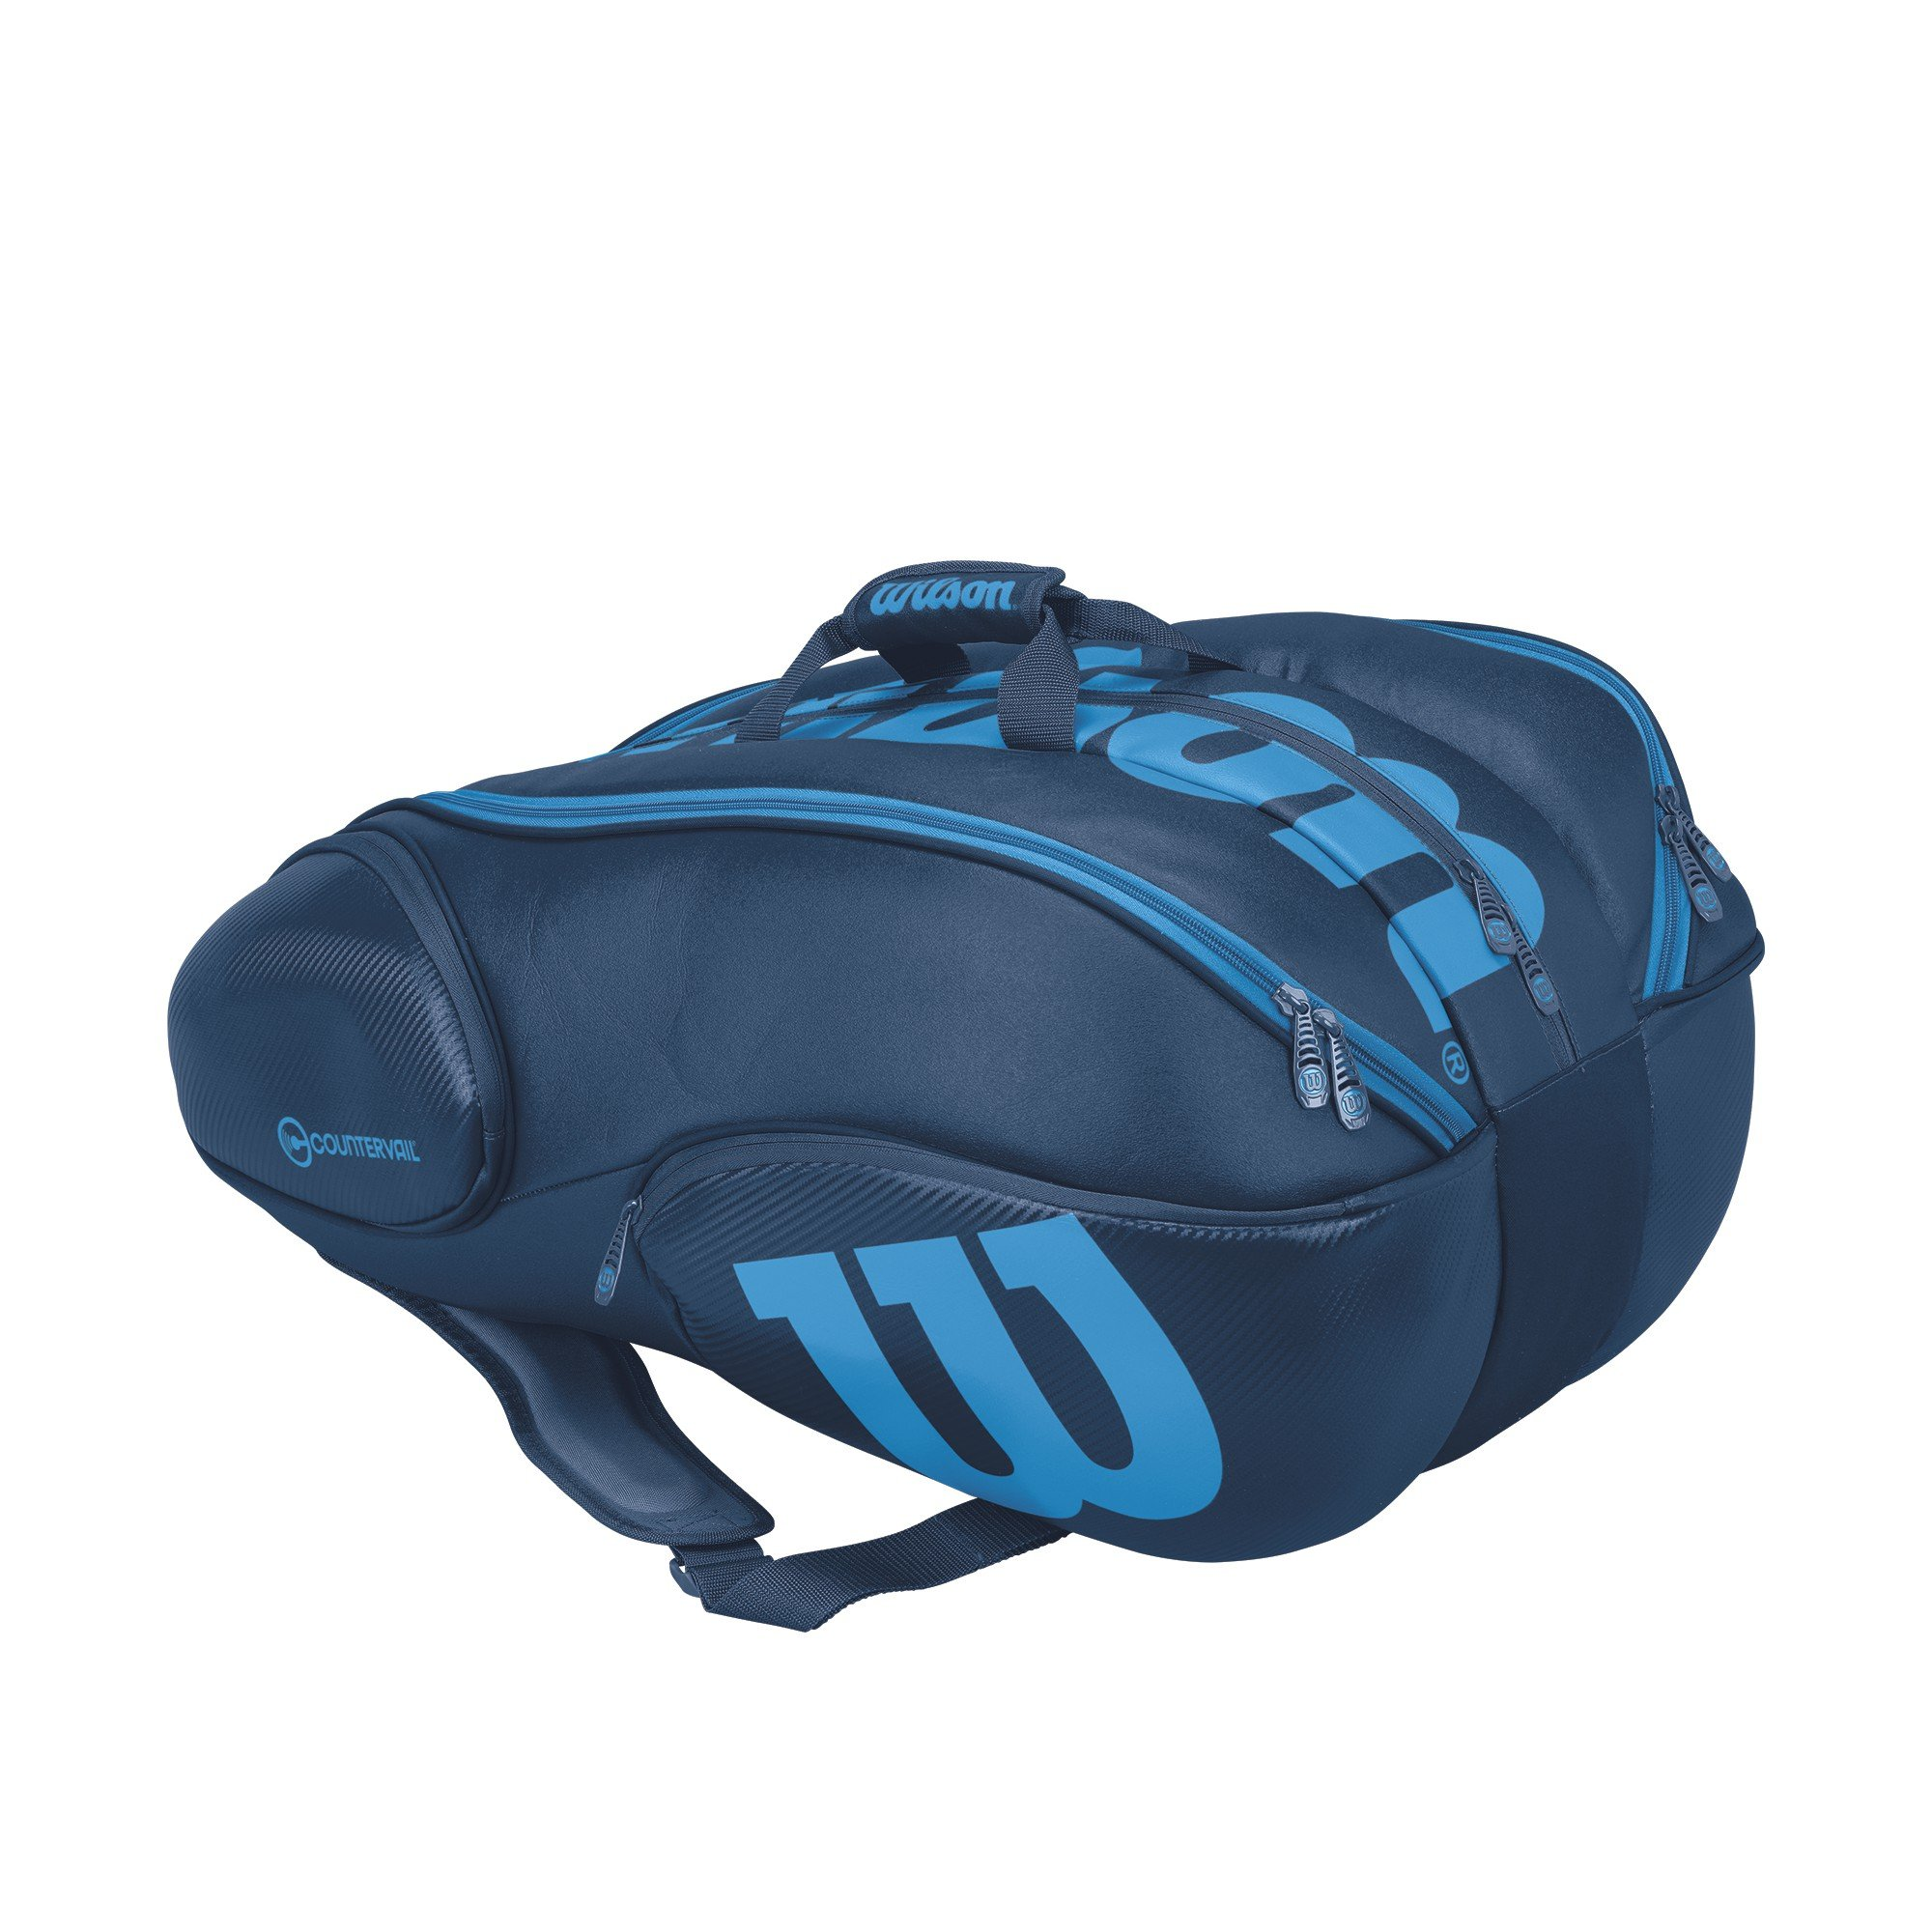 Vancouver Racket Bag, Ultra Collection - 15 Pack (Blue)